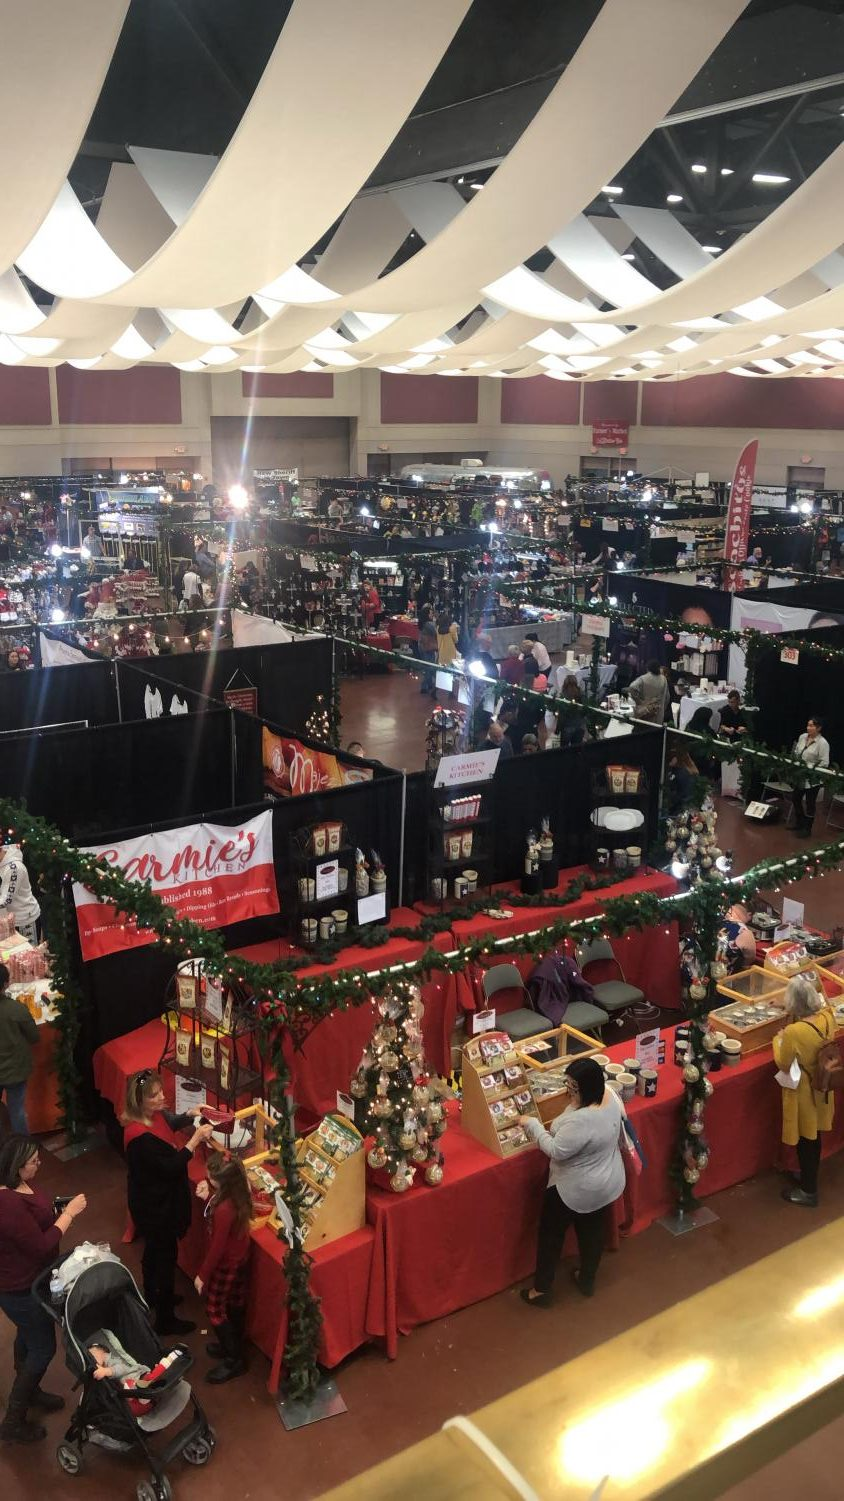 The Junior League of El Paso rings in the holiday season with their 46th annual